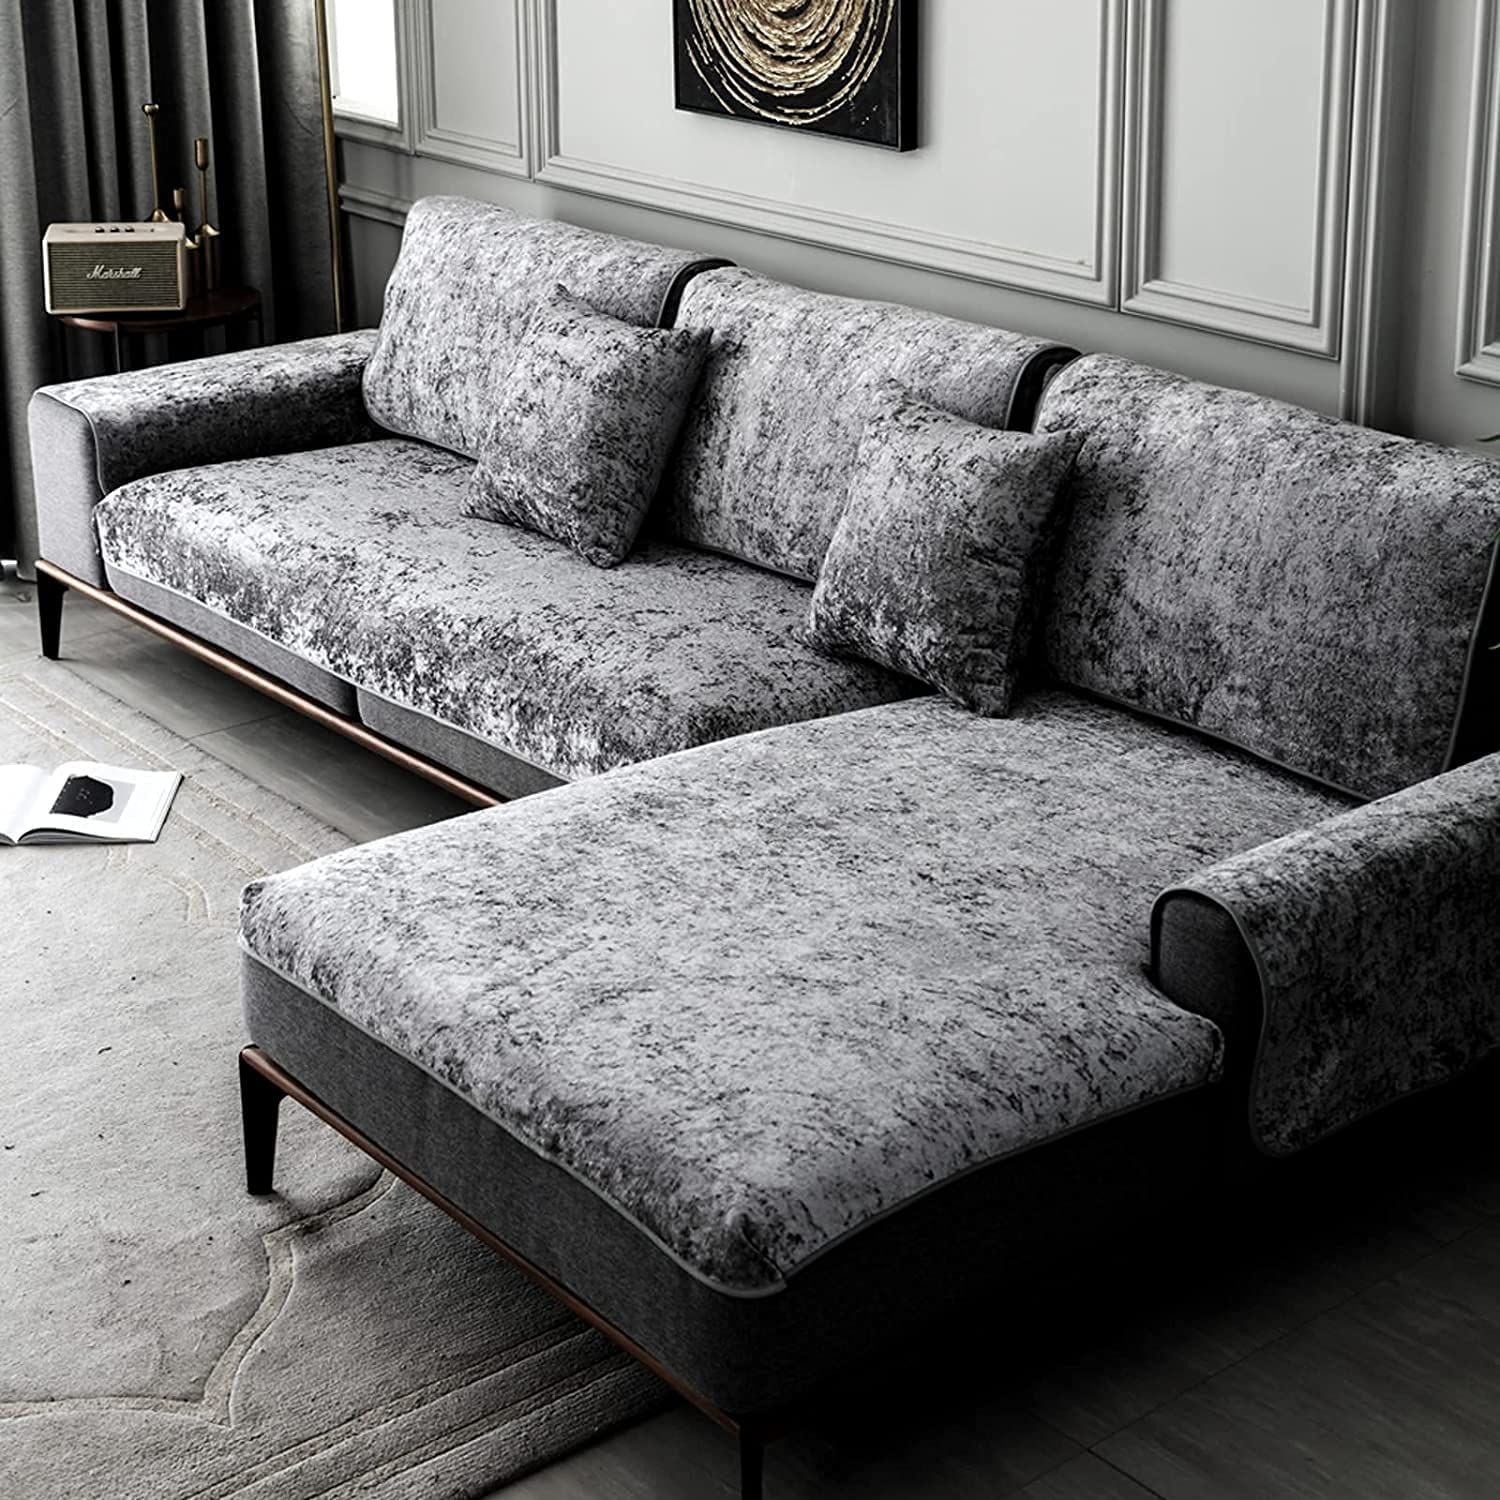 ZYZCJT 100% Spring new work Waterproof Inexpensive Jacquard Suede Slipcover Sofa